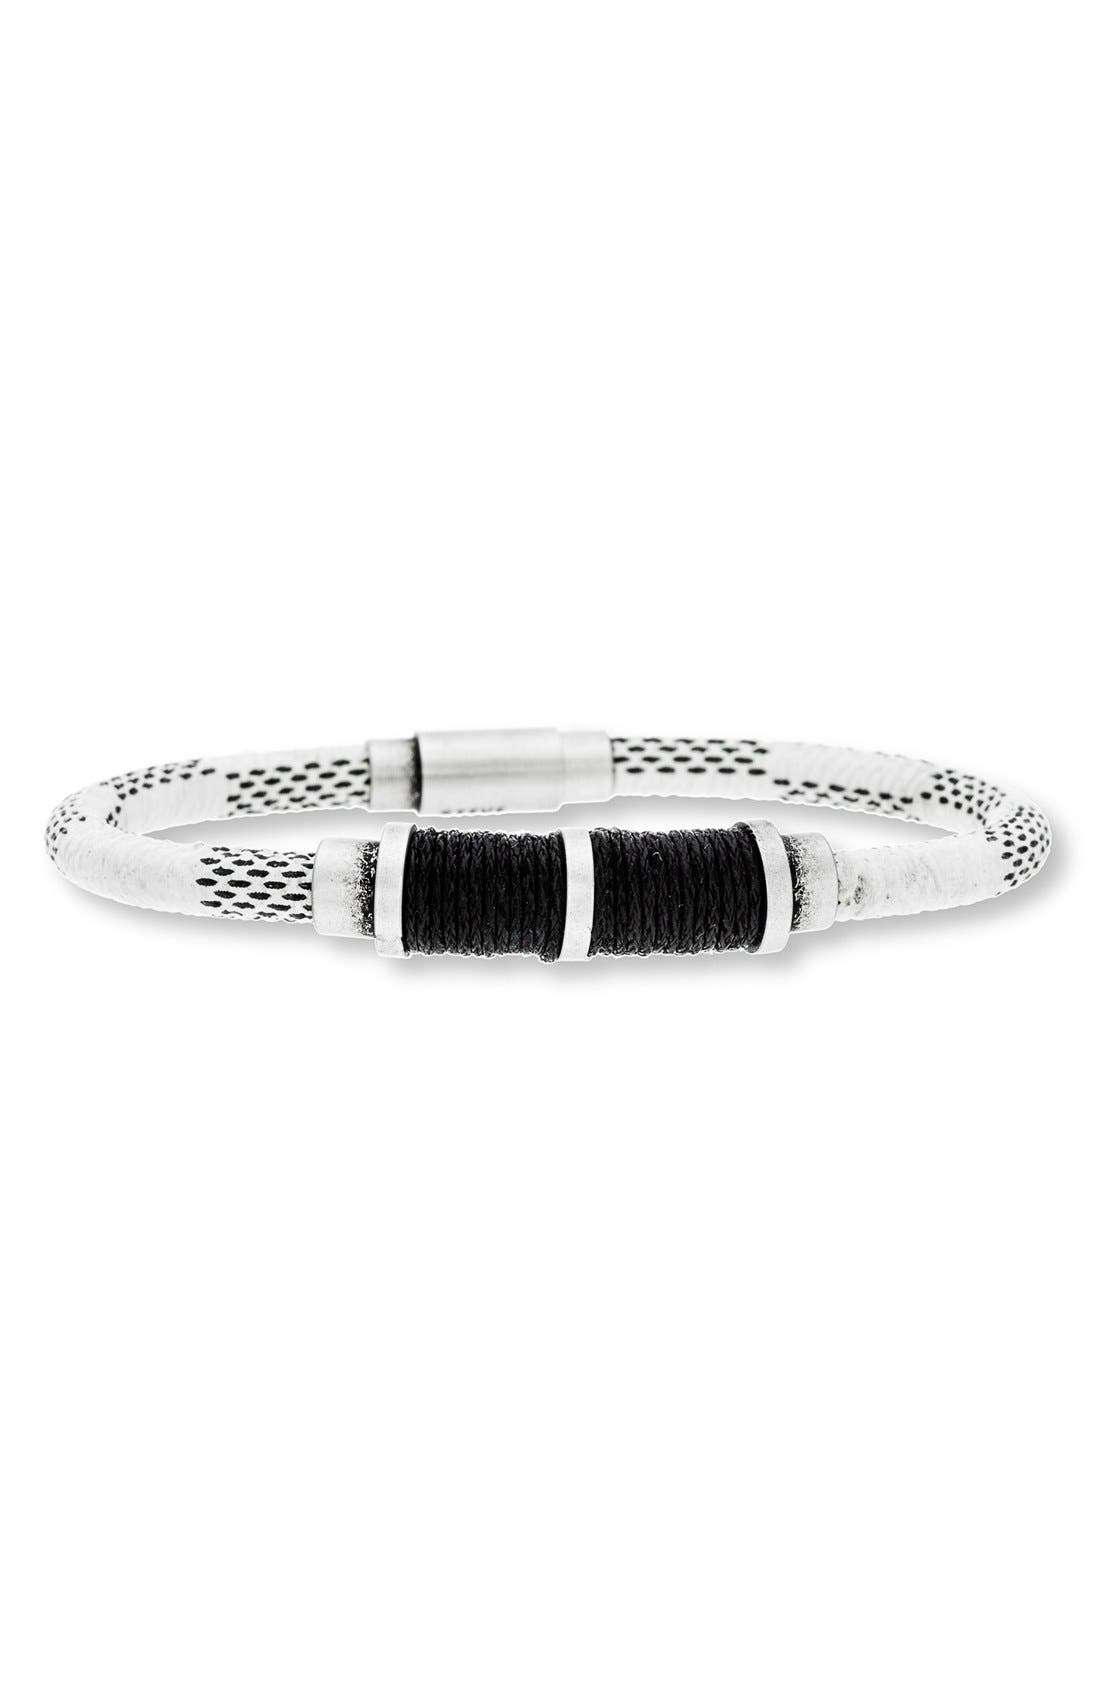 Stainless Steel & Leather Bracelet,                             Main thumbnail 1, color,                             100